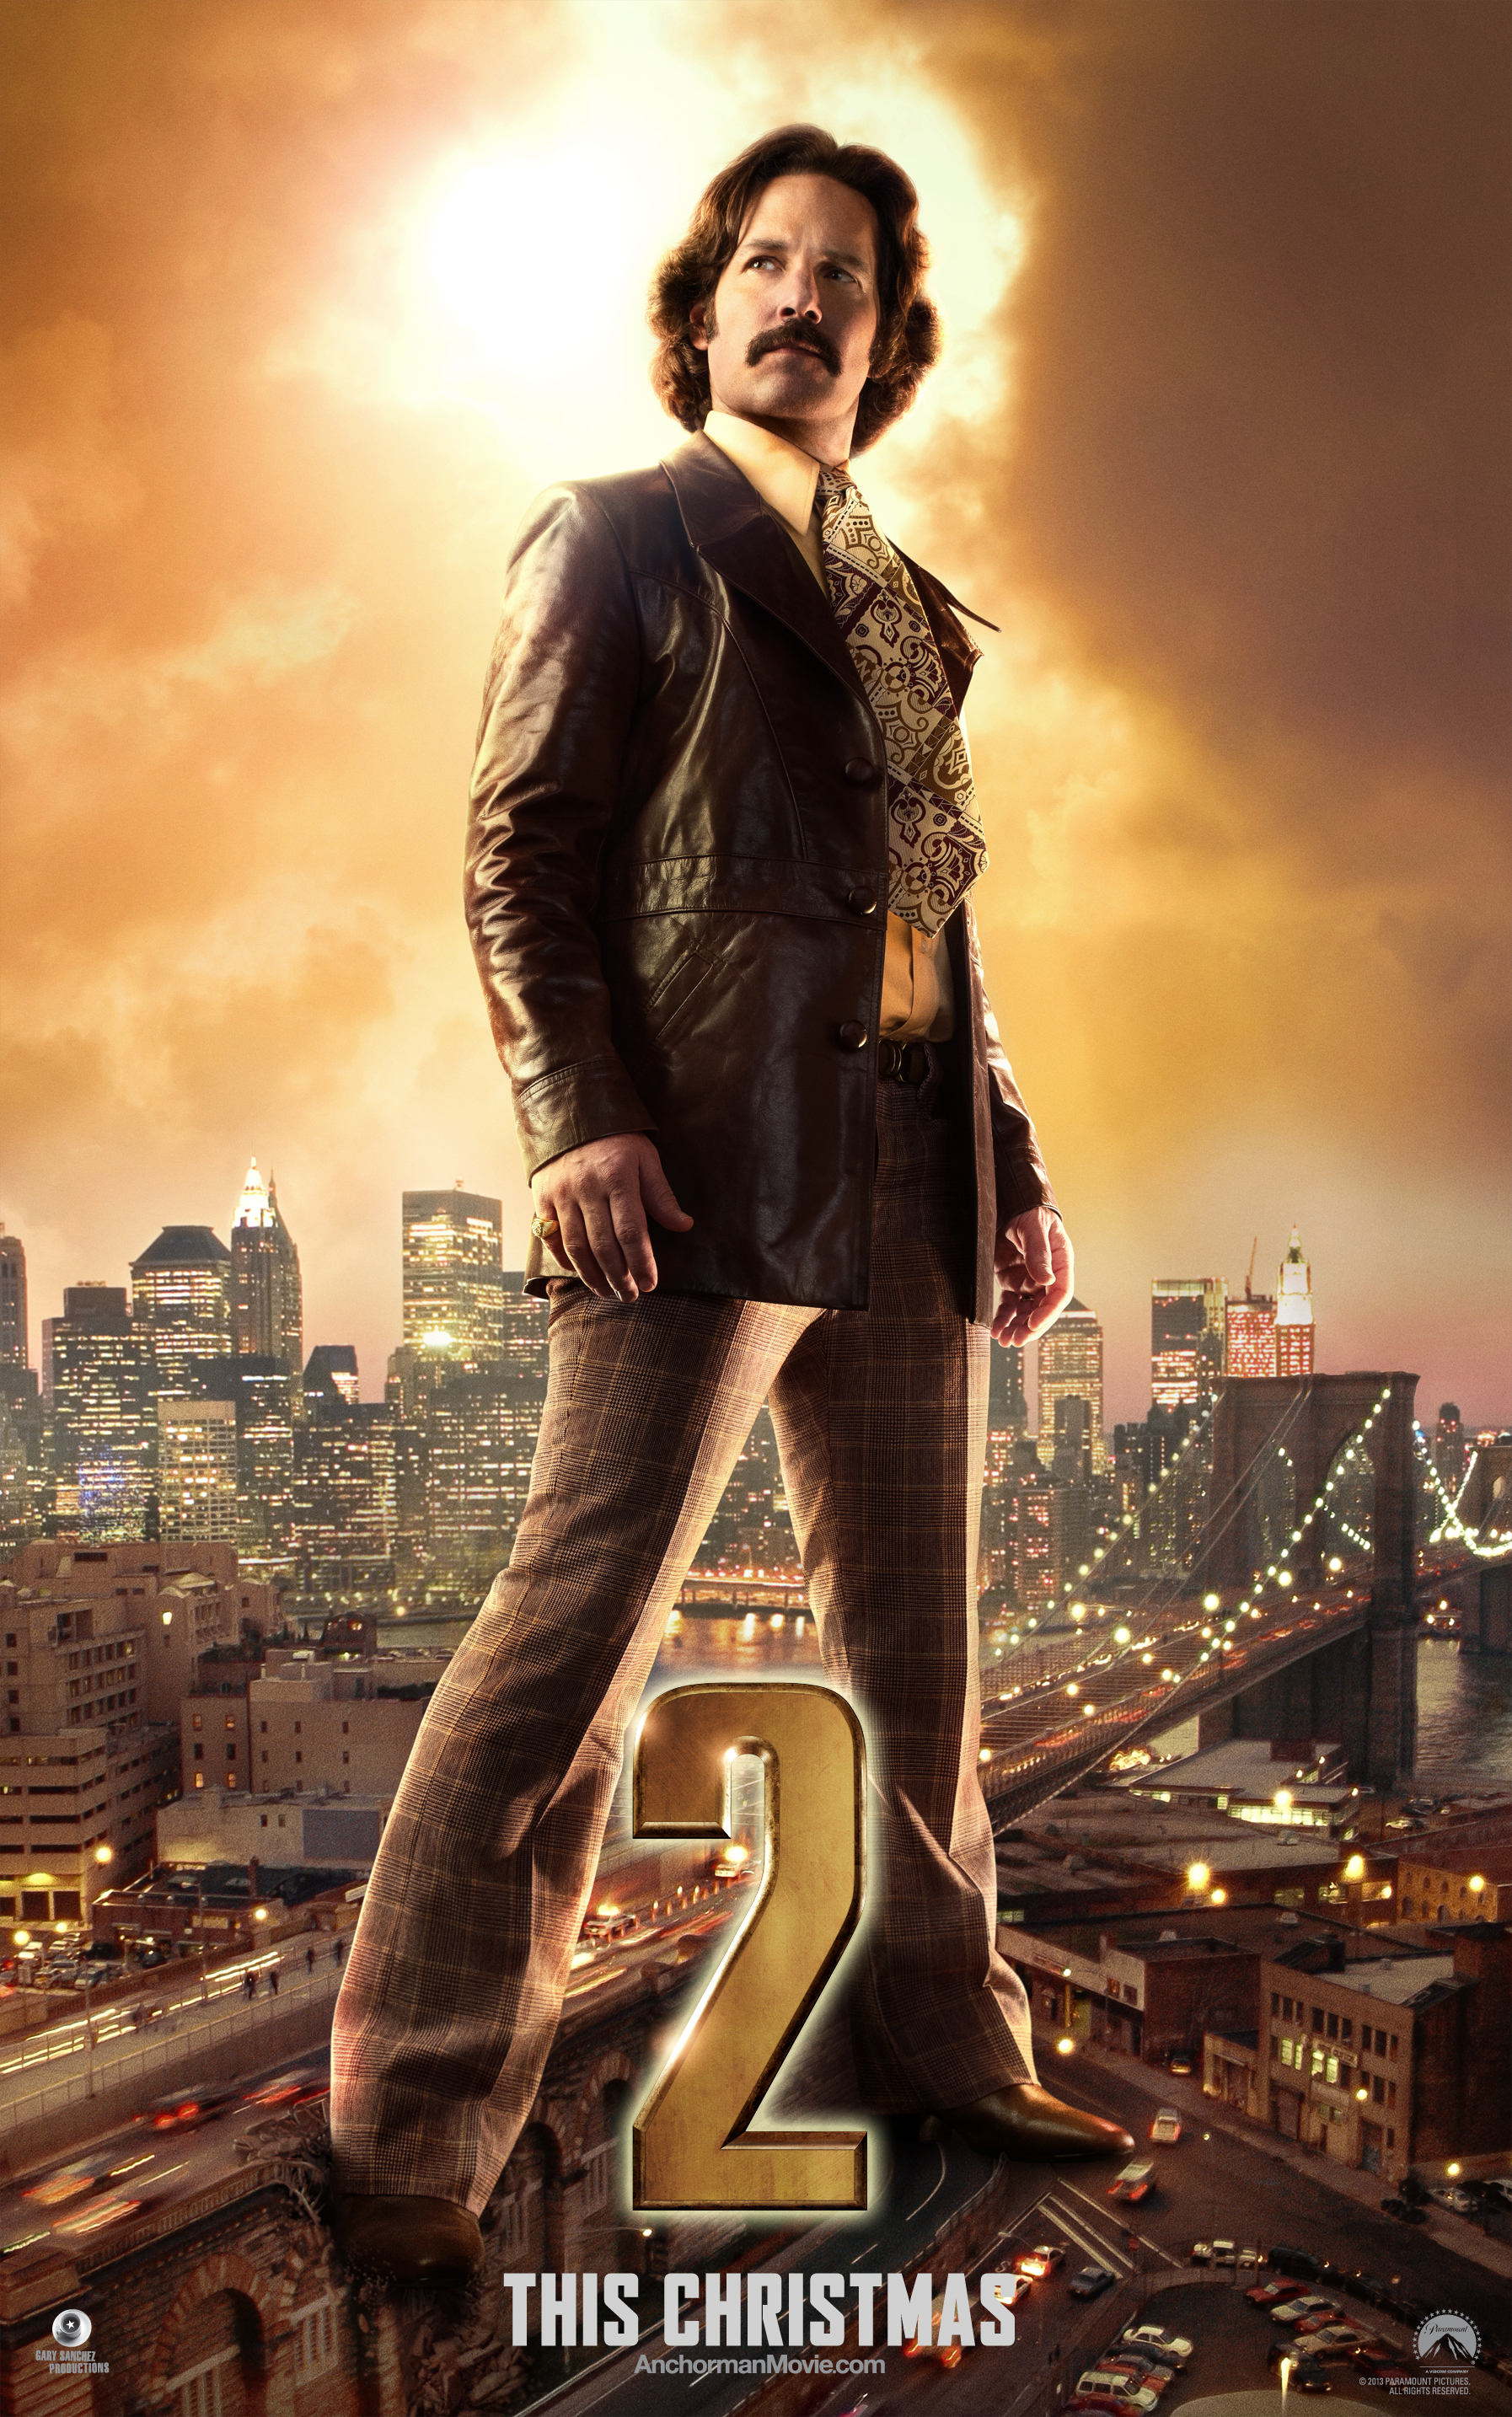 anchorman2brianonline11 Anchorman 2: The Legend Continues Builds Legacy with Character Posters